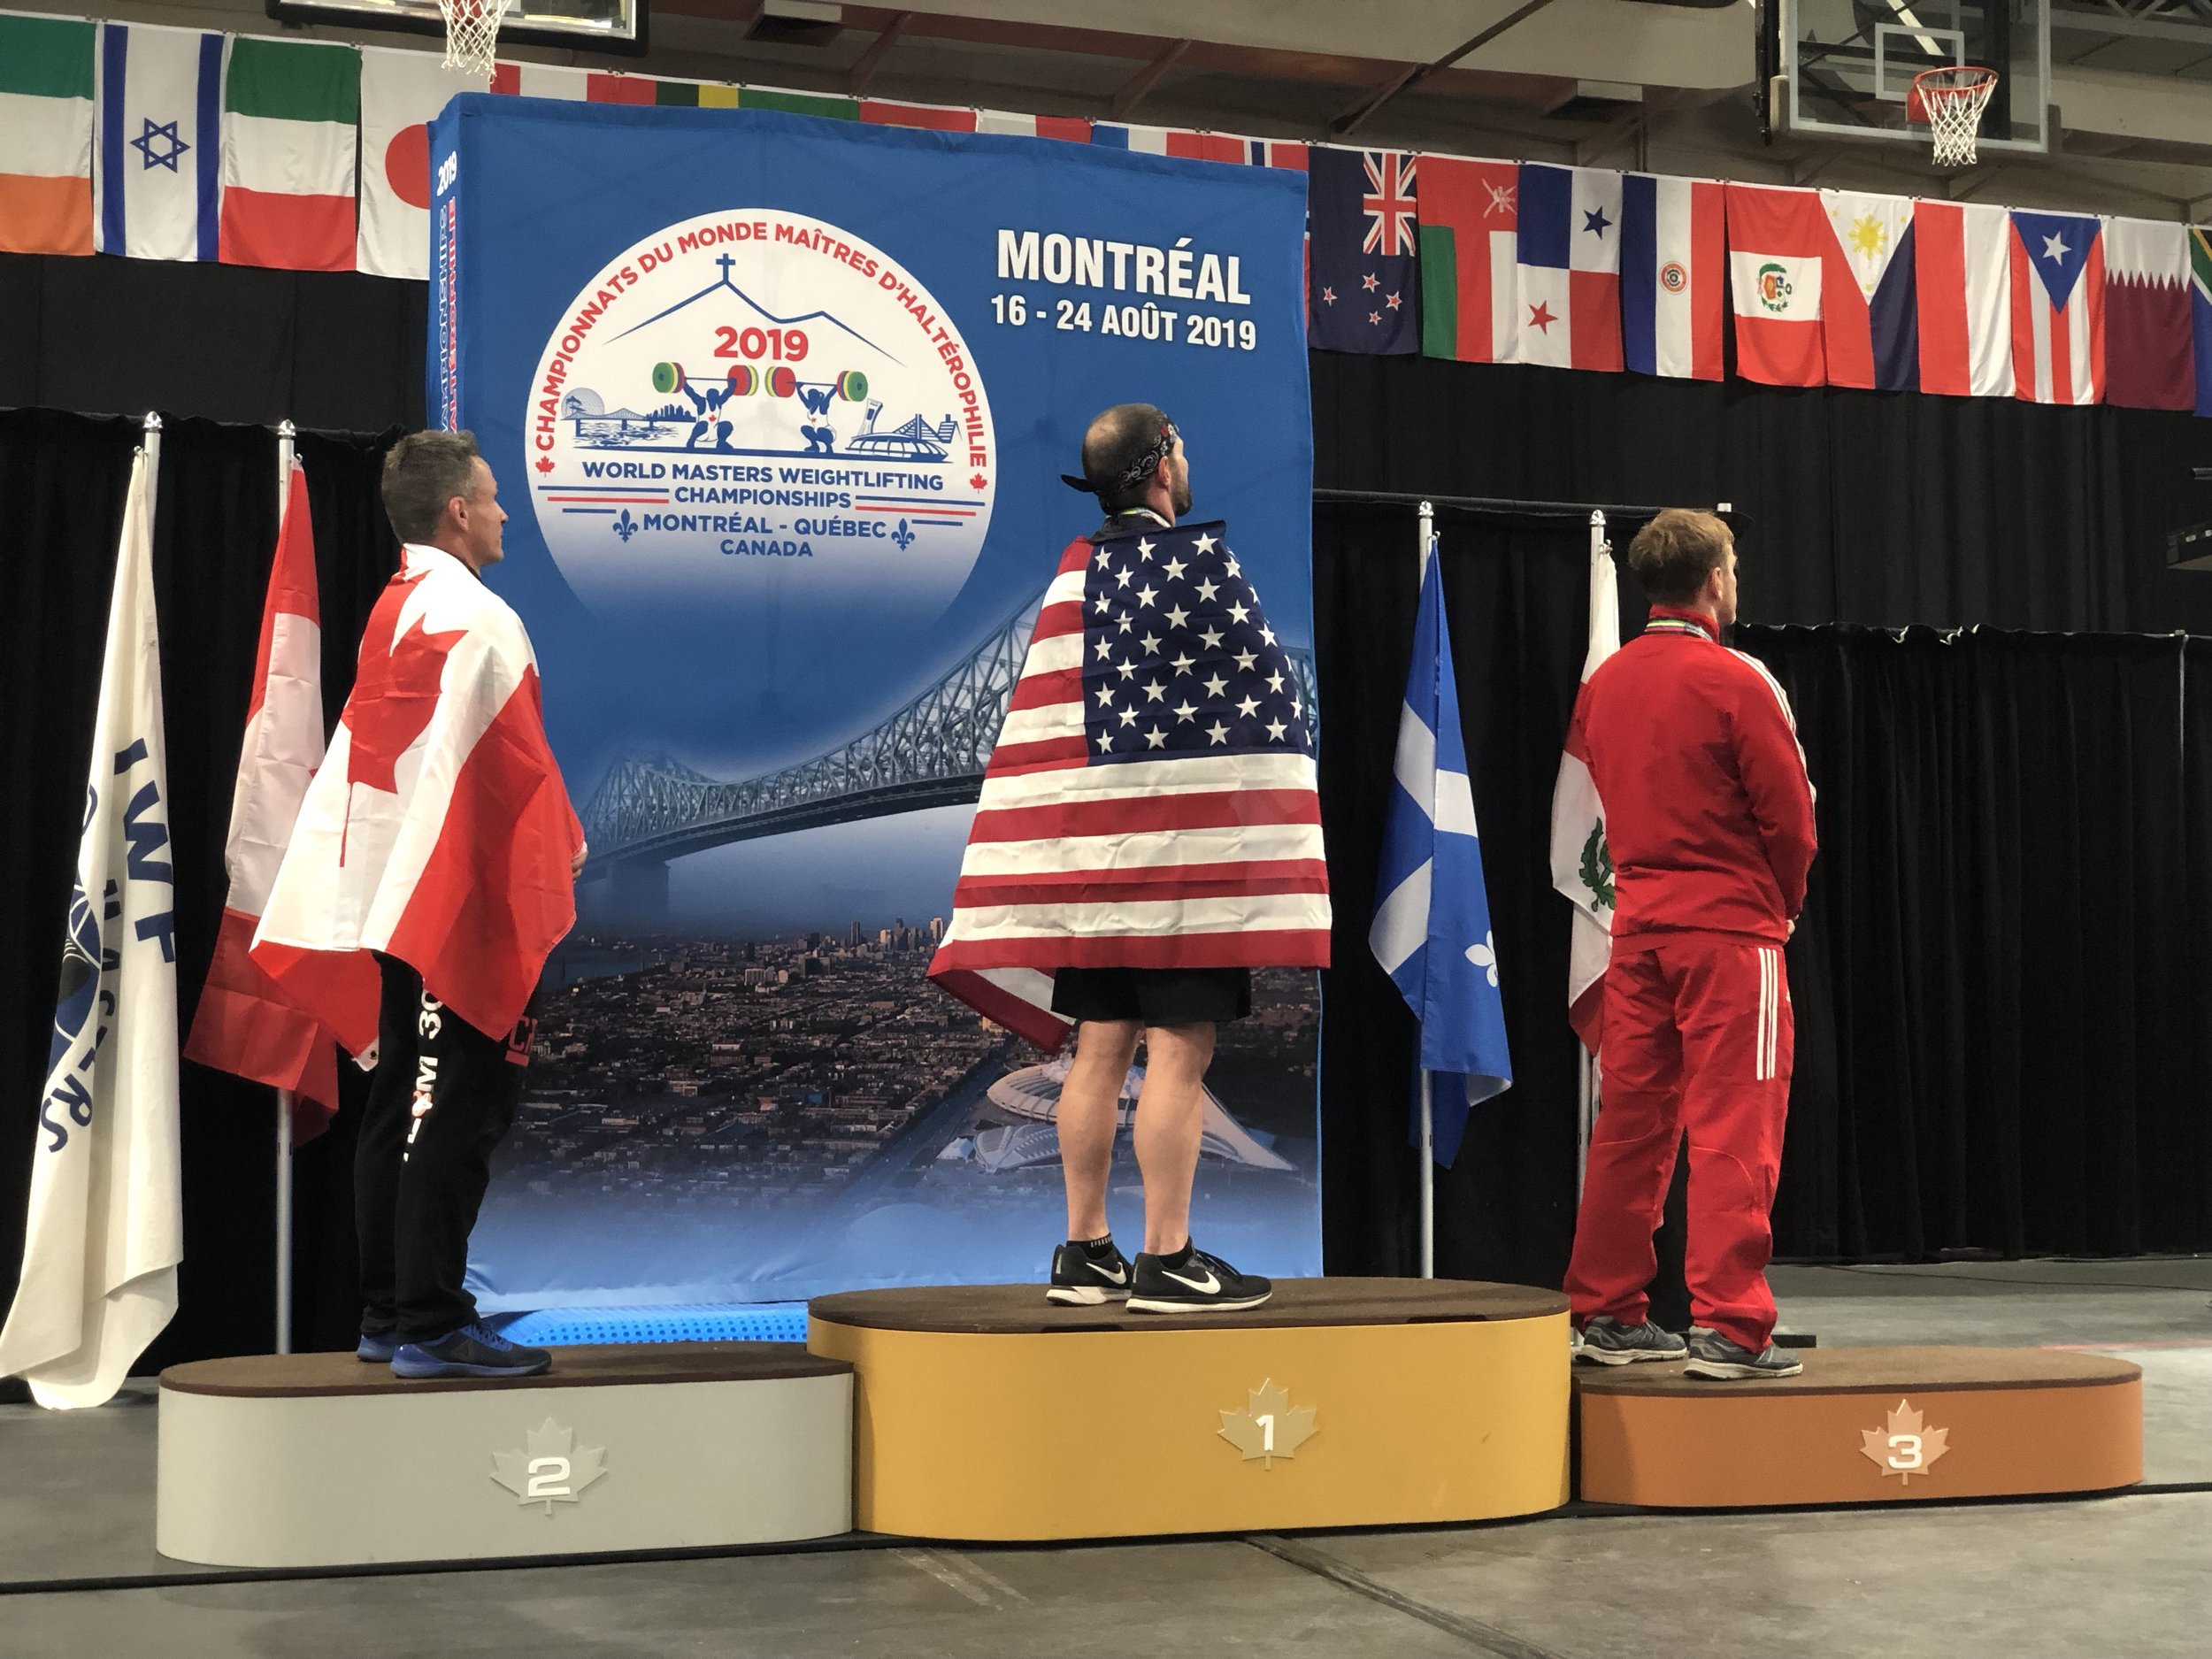 Coach on the podium at the World Masters